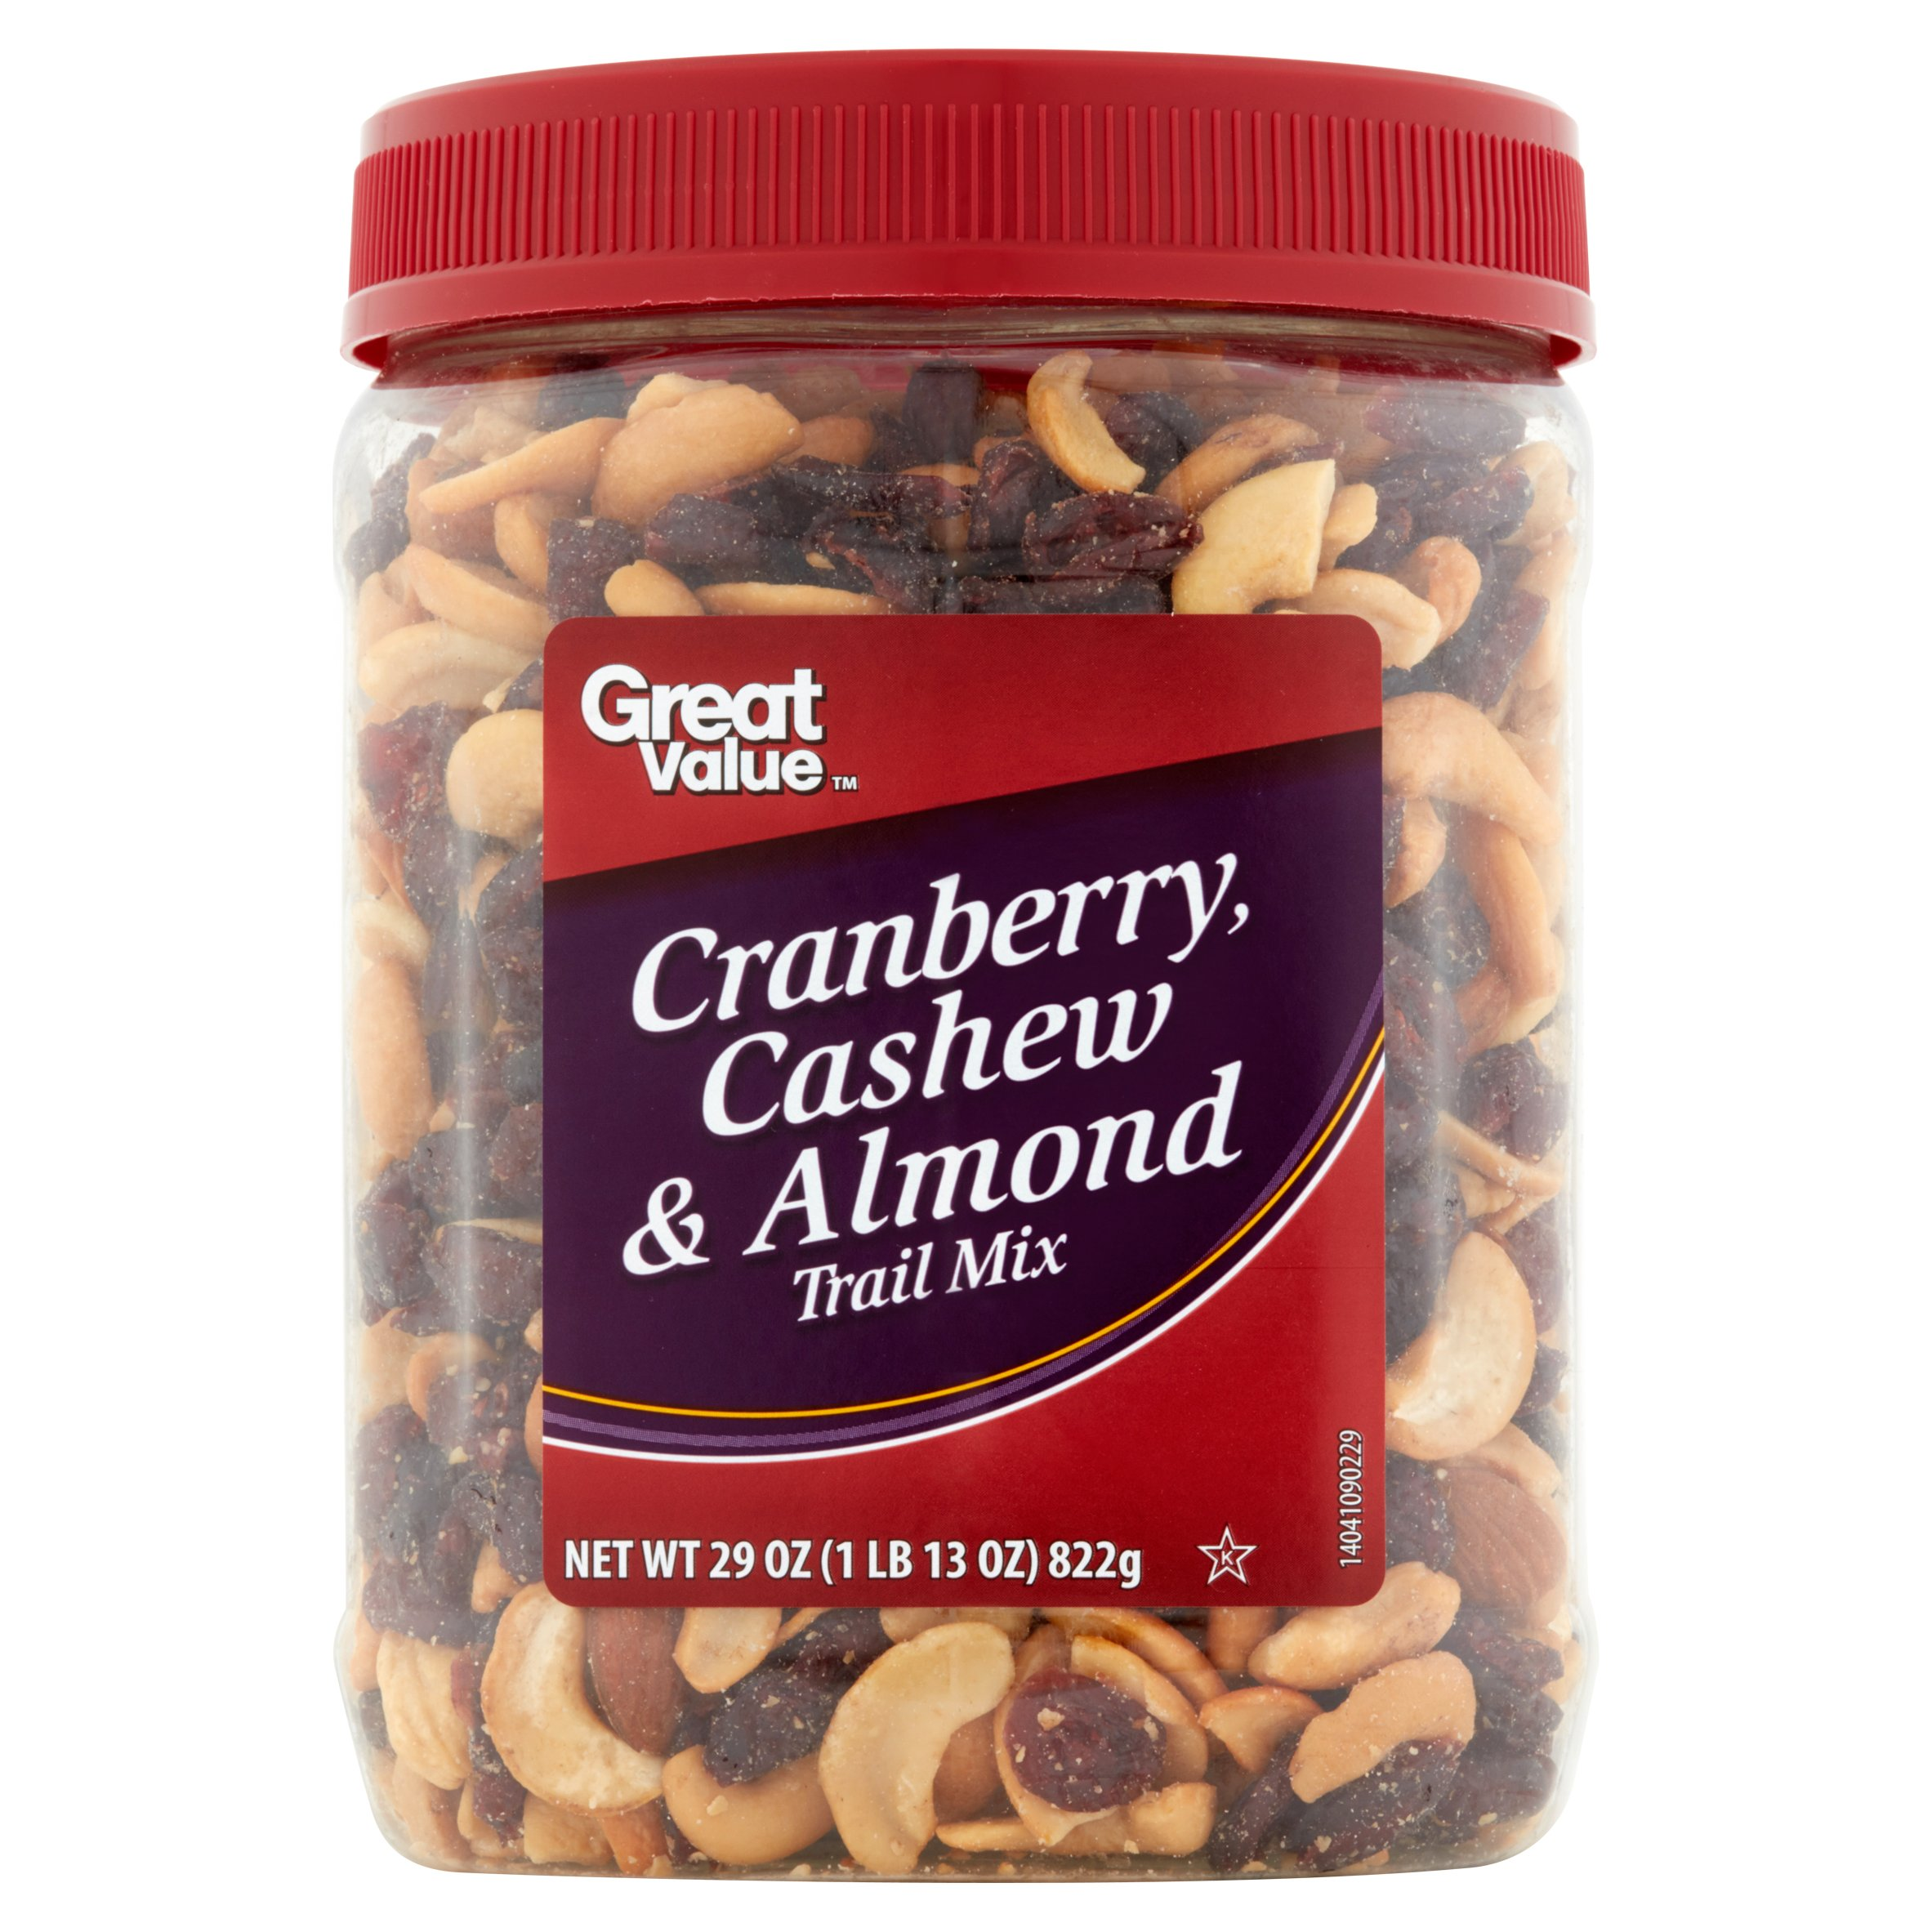 Great Value Cranberry, Cashew & Almond Trail Mix, 29 Oz